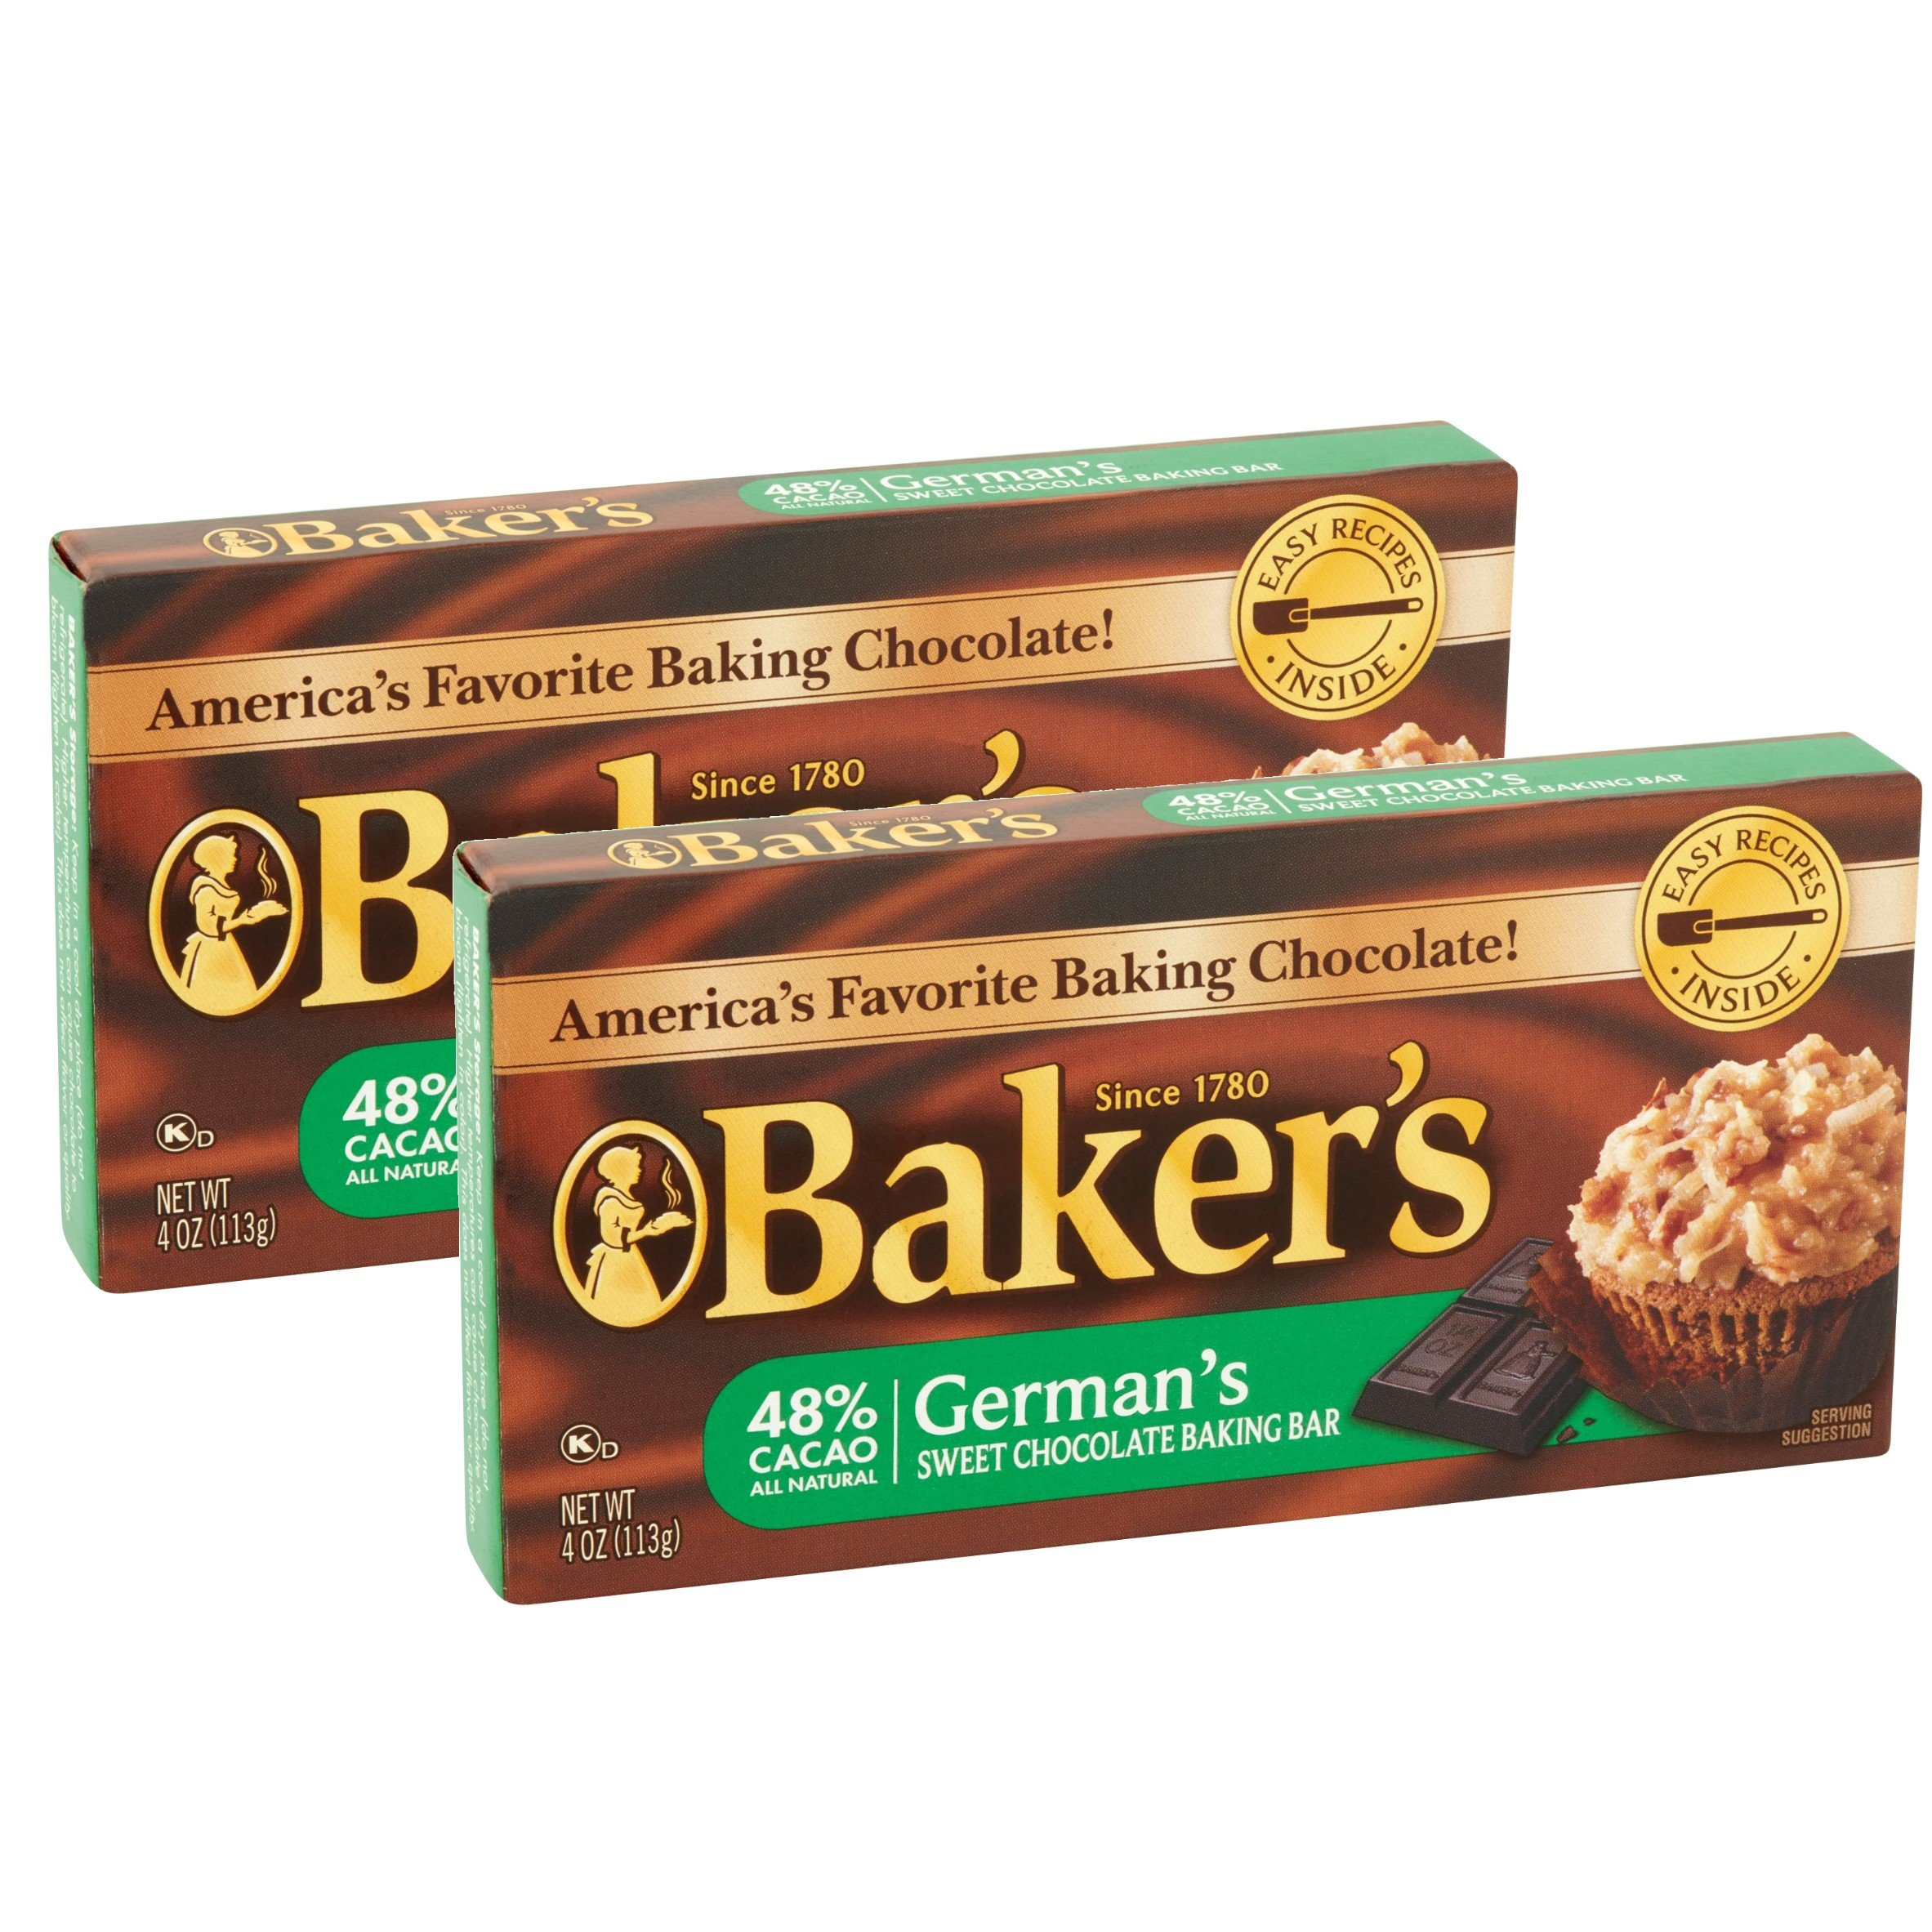 Lot of 2 Baker's 4 oz. Sweet Chocolate Bar-German's All Natural 48% Cacao